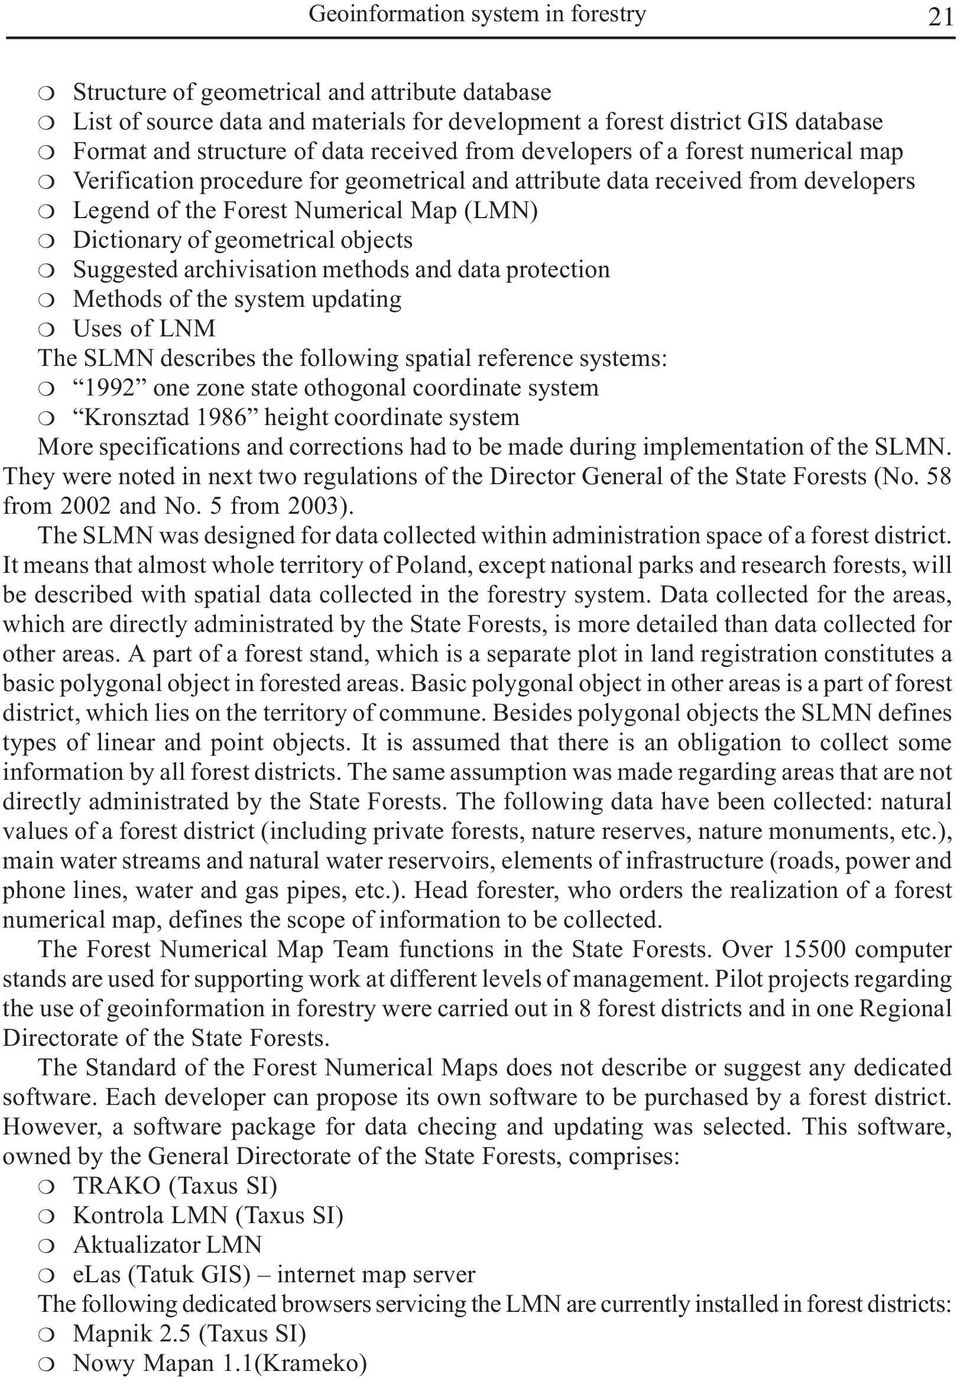 geometrical objects Suggested archivisation methods and data protection Methods of the system updating Uses of LNM The SLMN describes the following spatial reference systems: 1992 one zone state